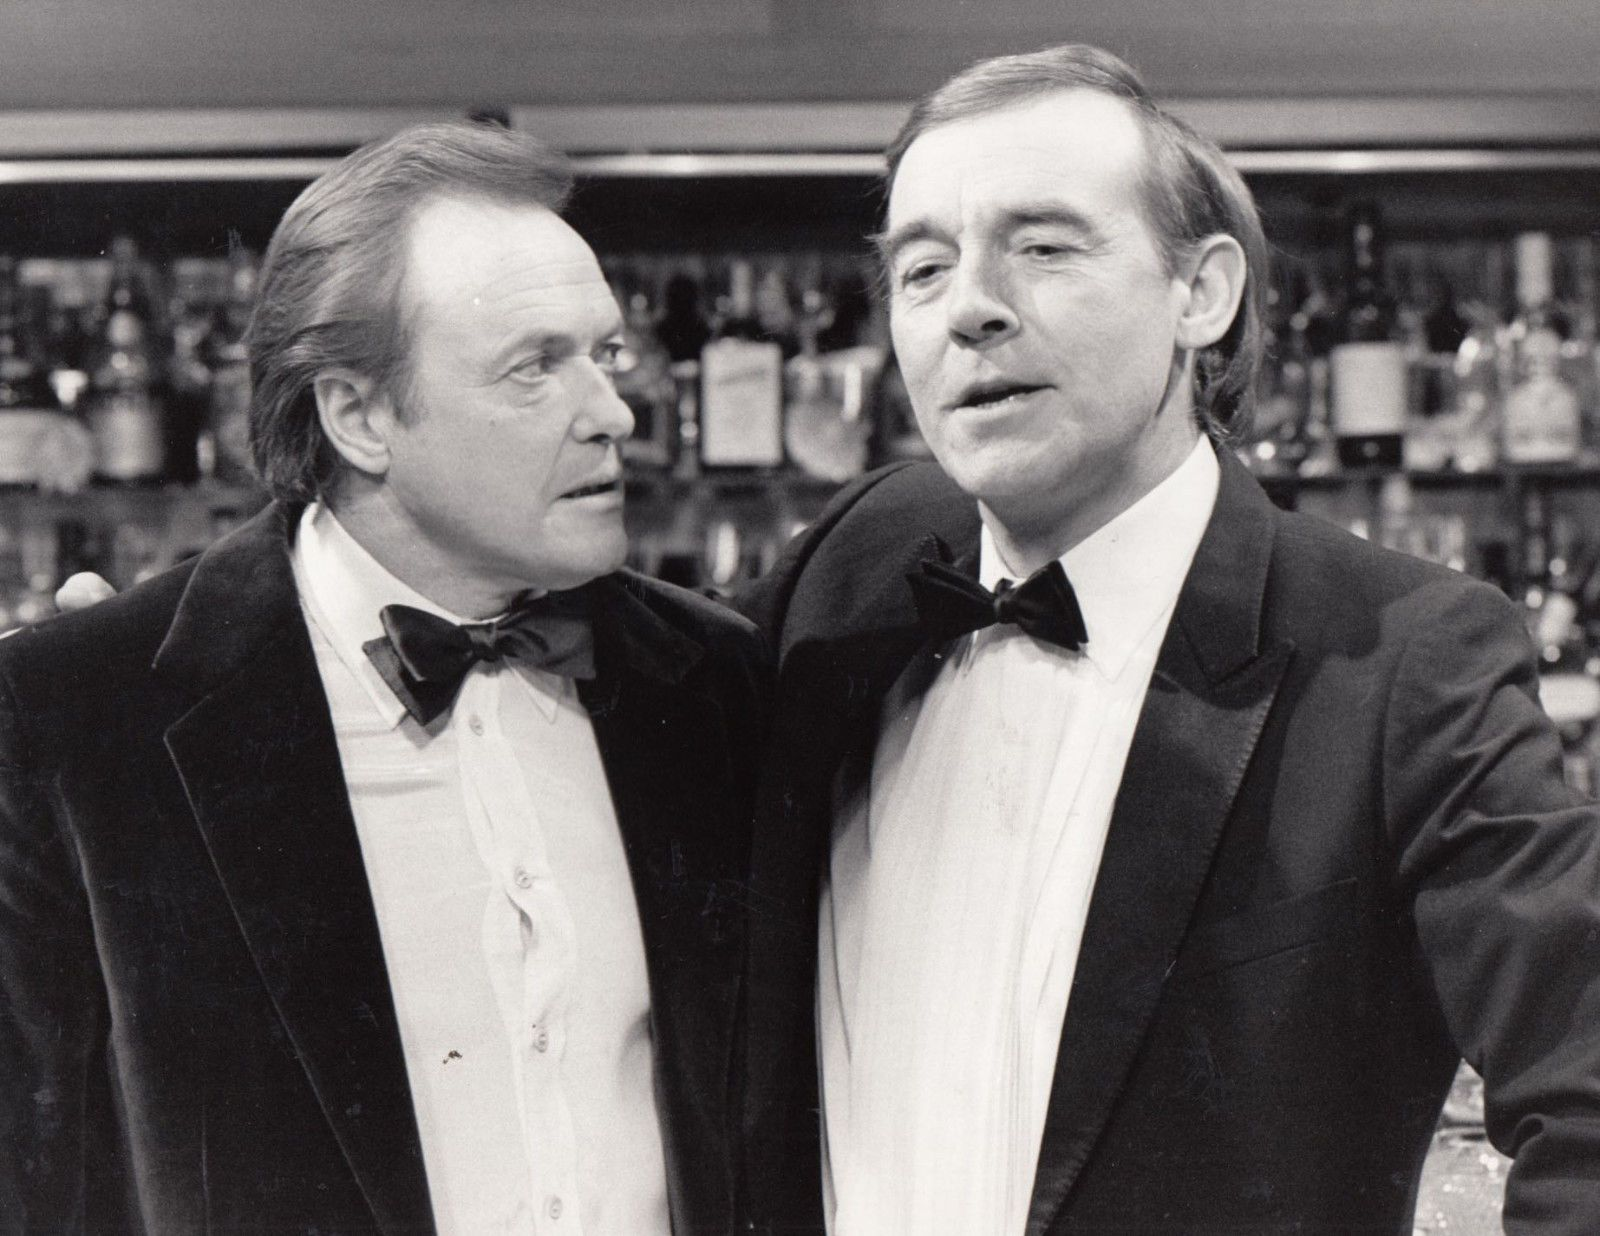 james bolam likely lads